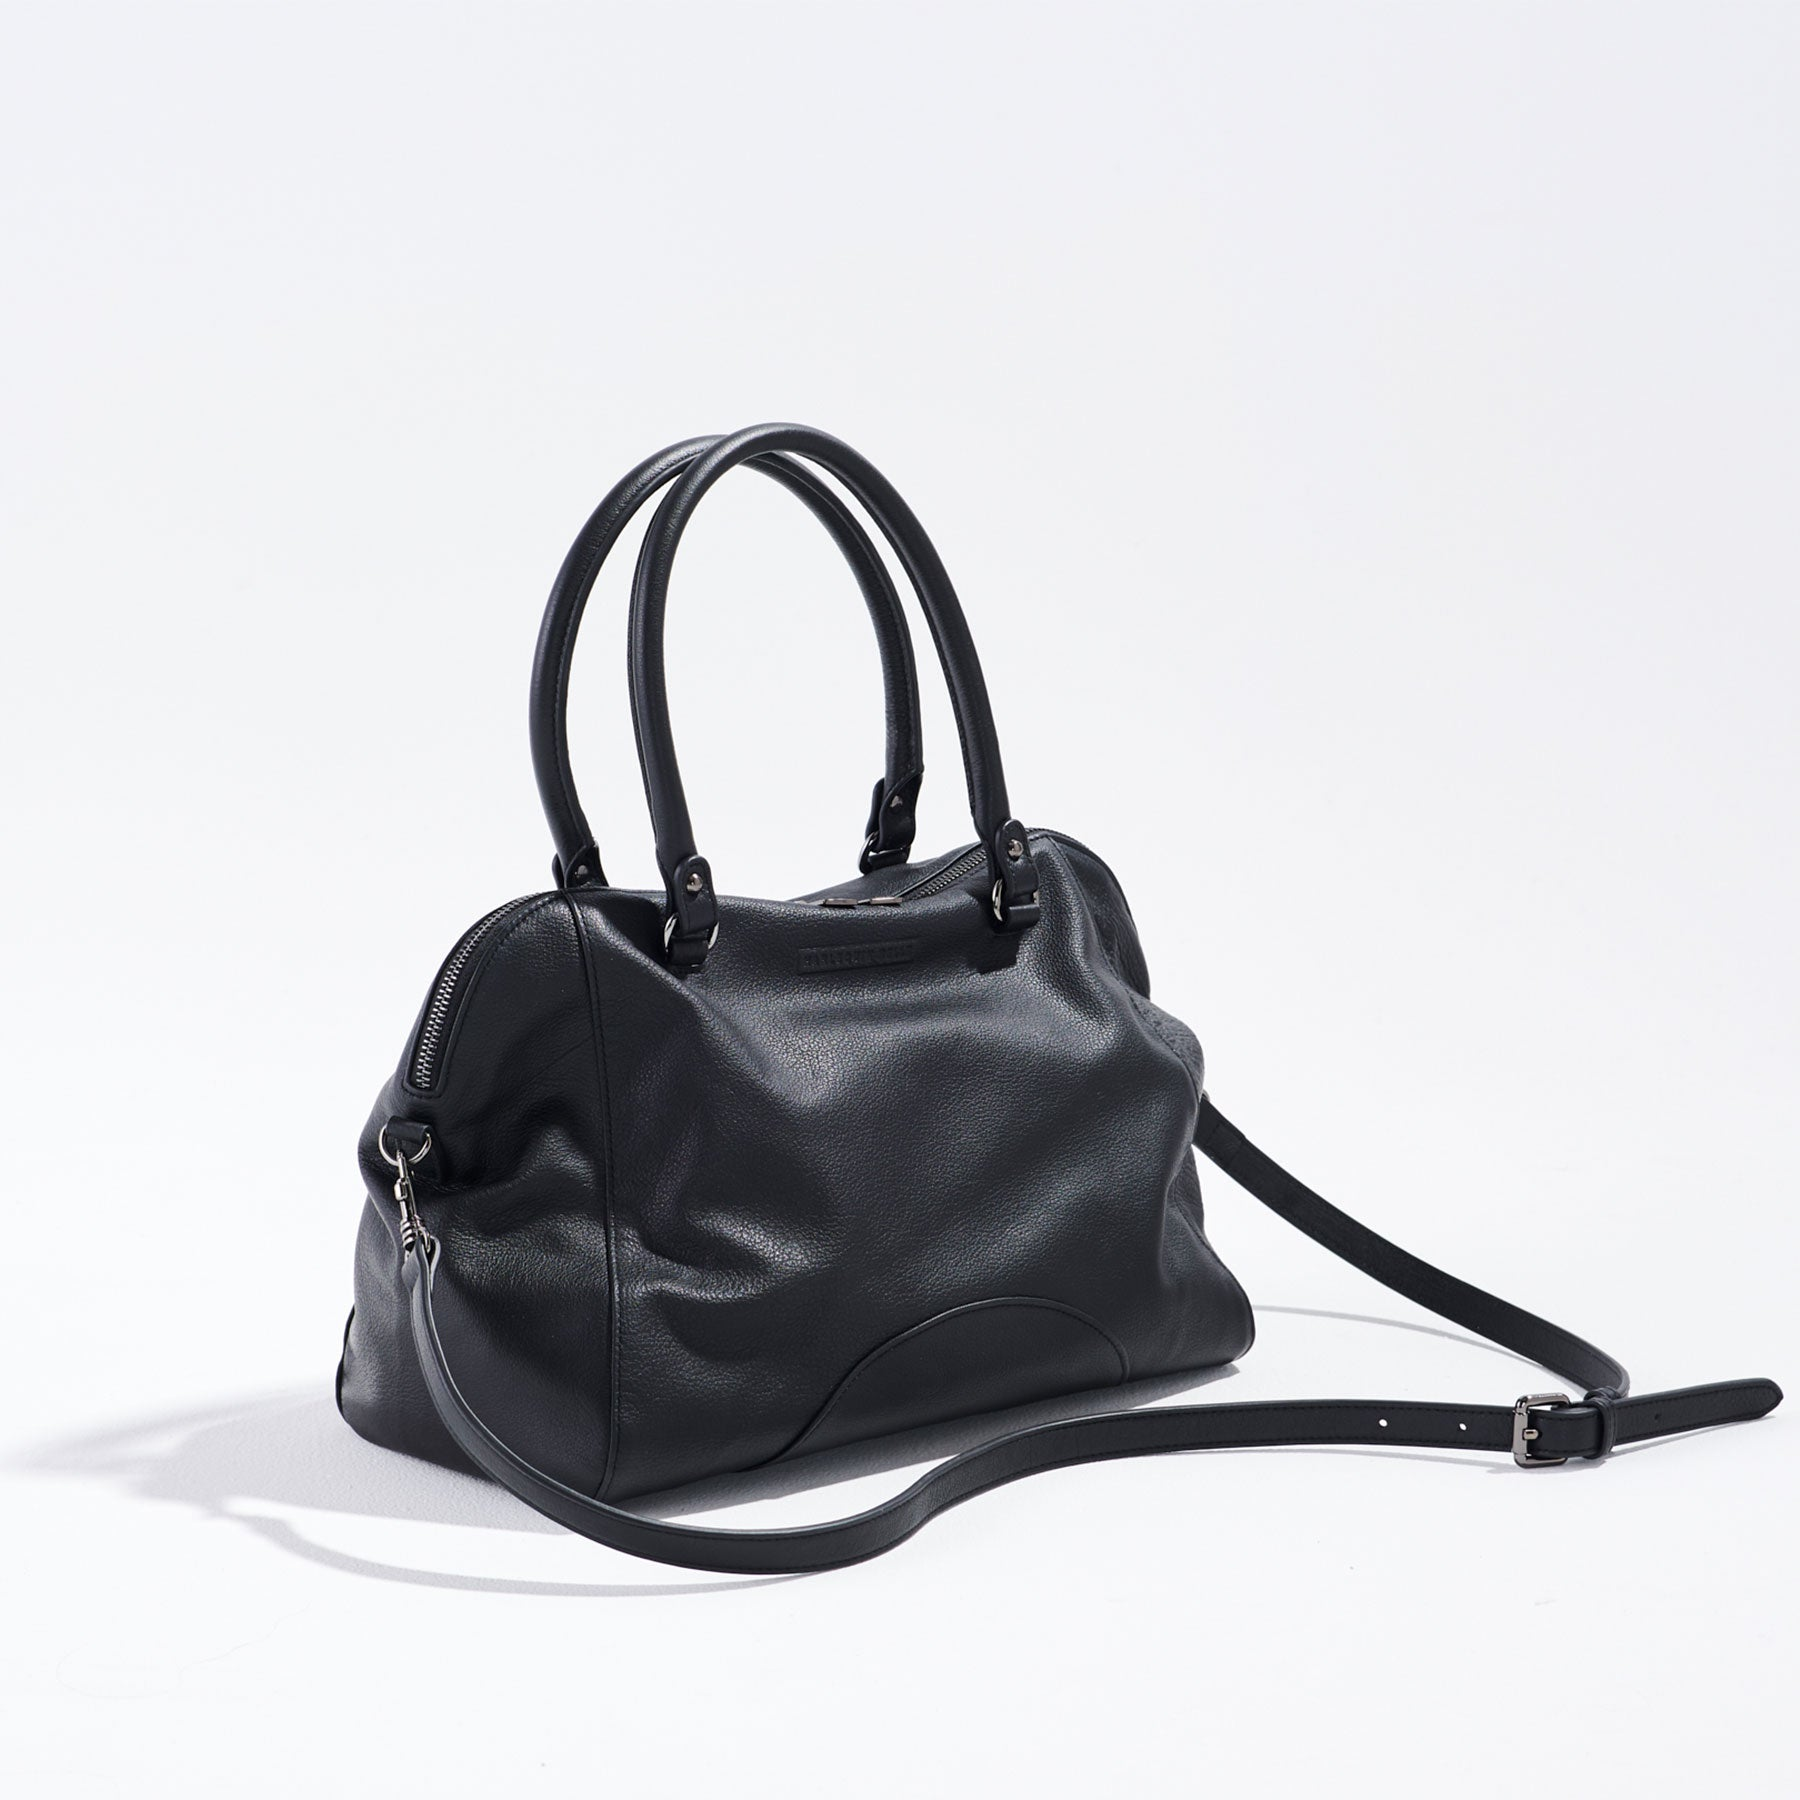 Harlequin Belle Moonrise Bag - Large black leather women's handbag